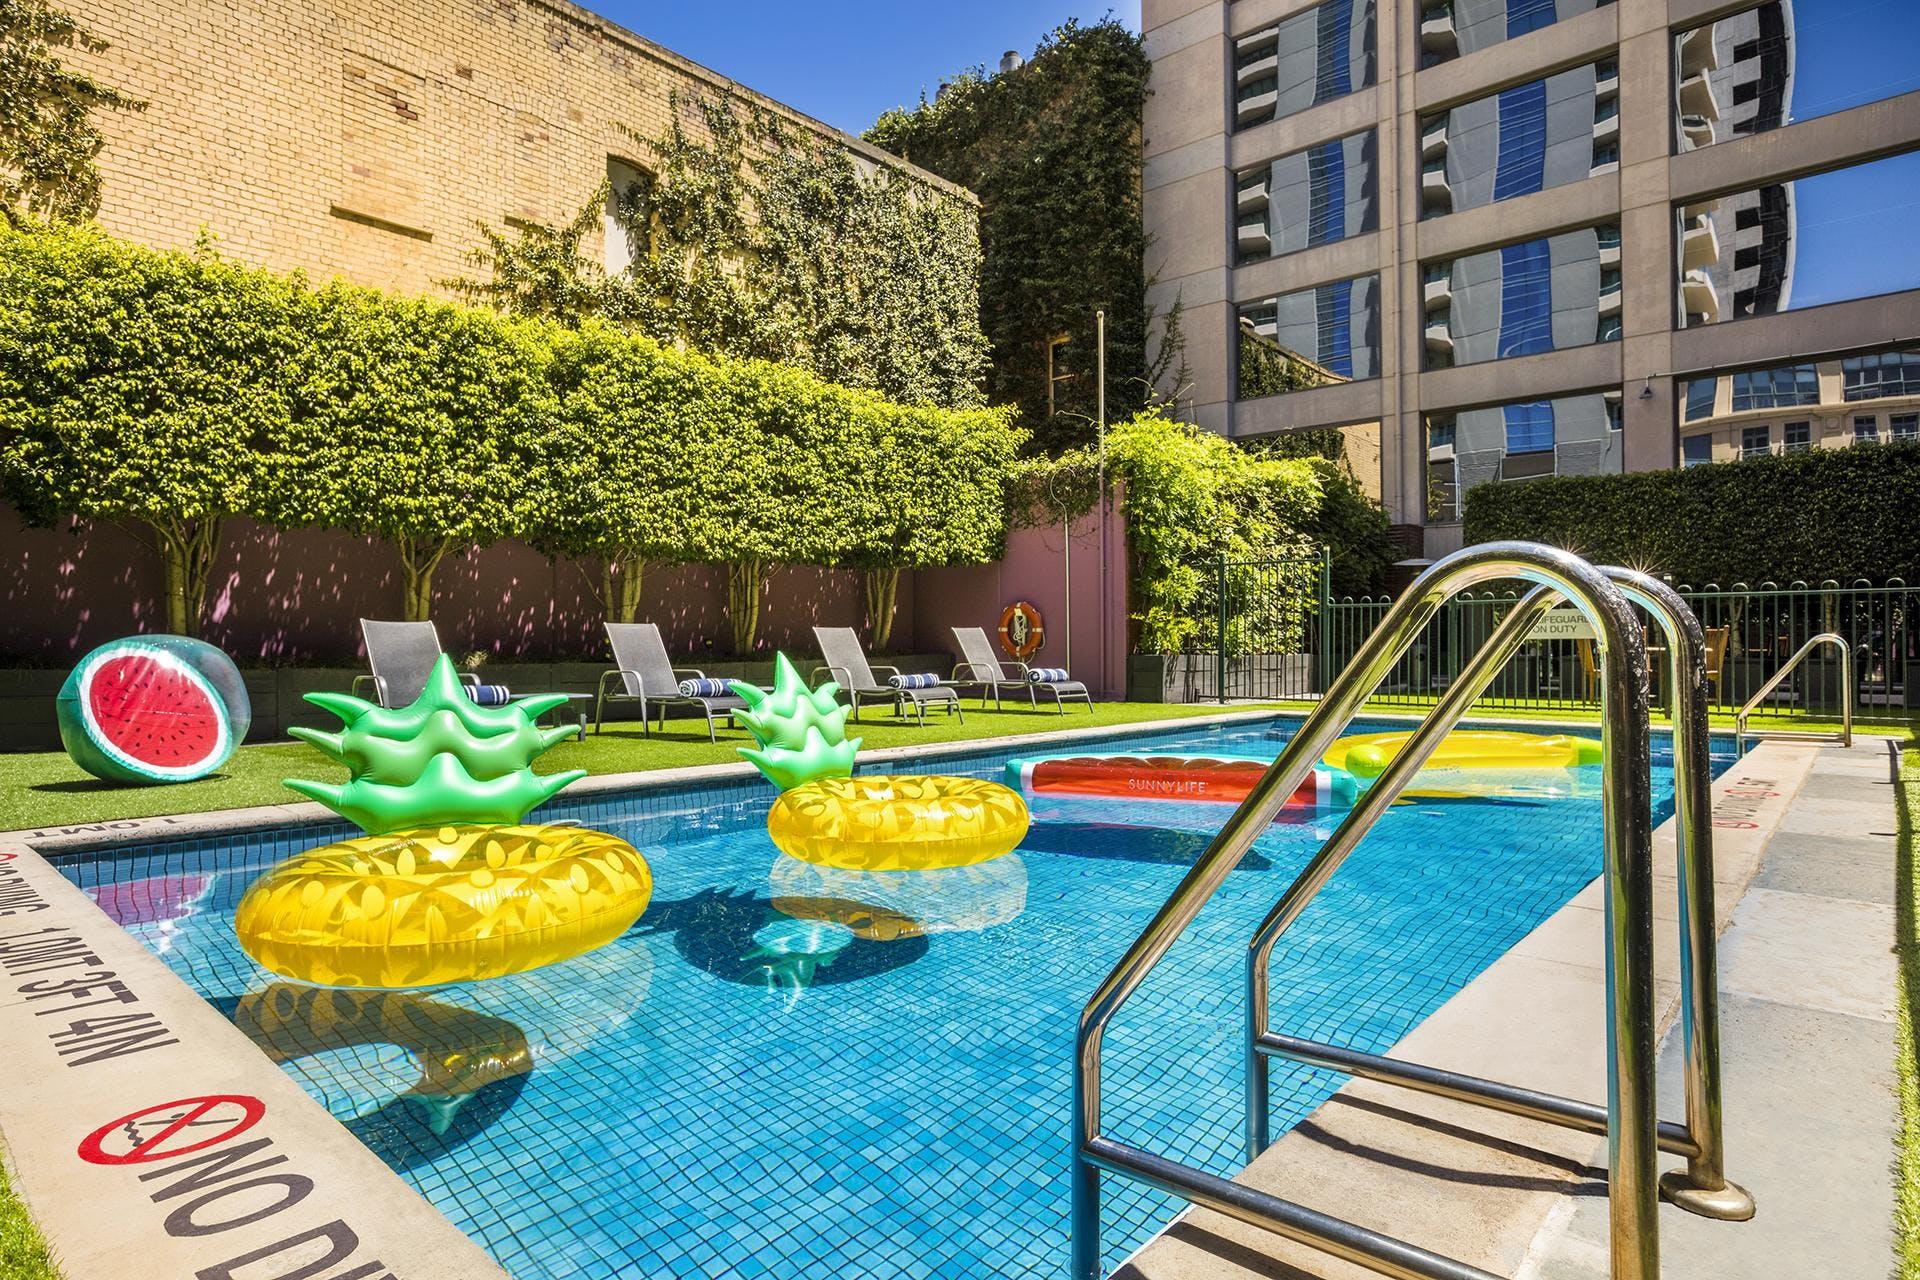 Summer Pool Party on the Rooftop Terrace